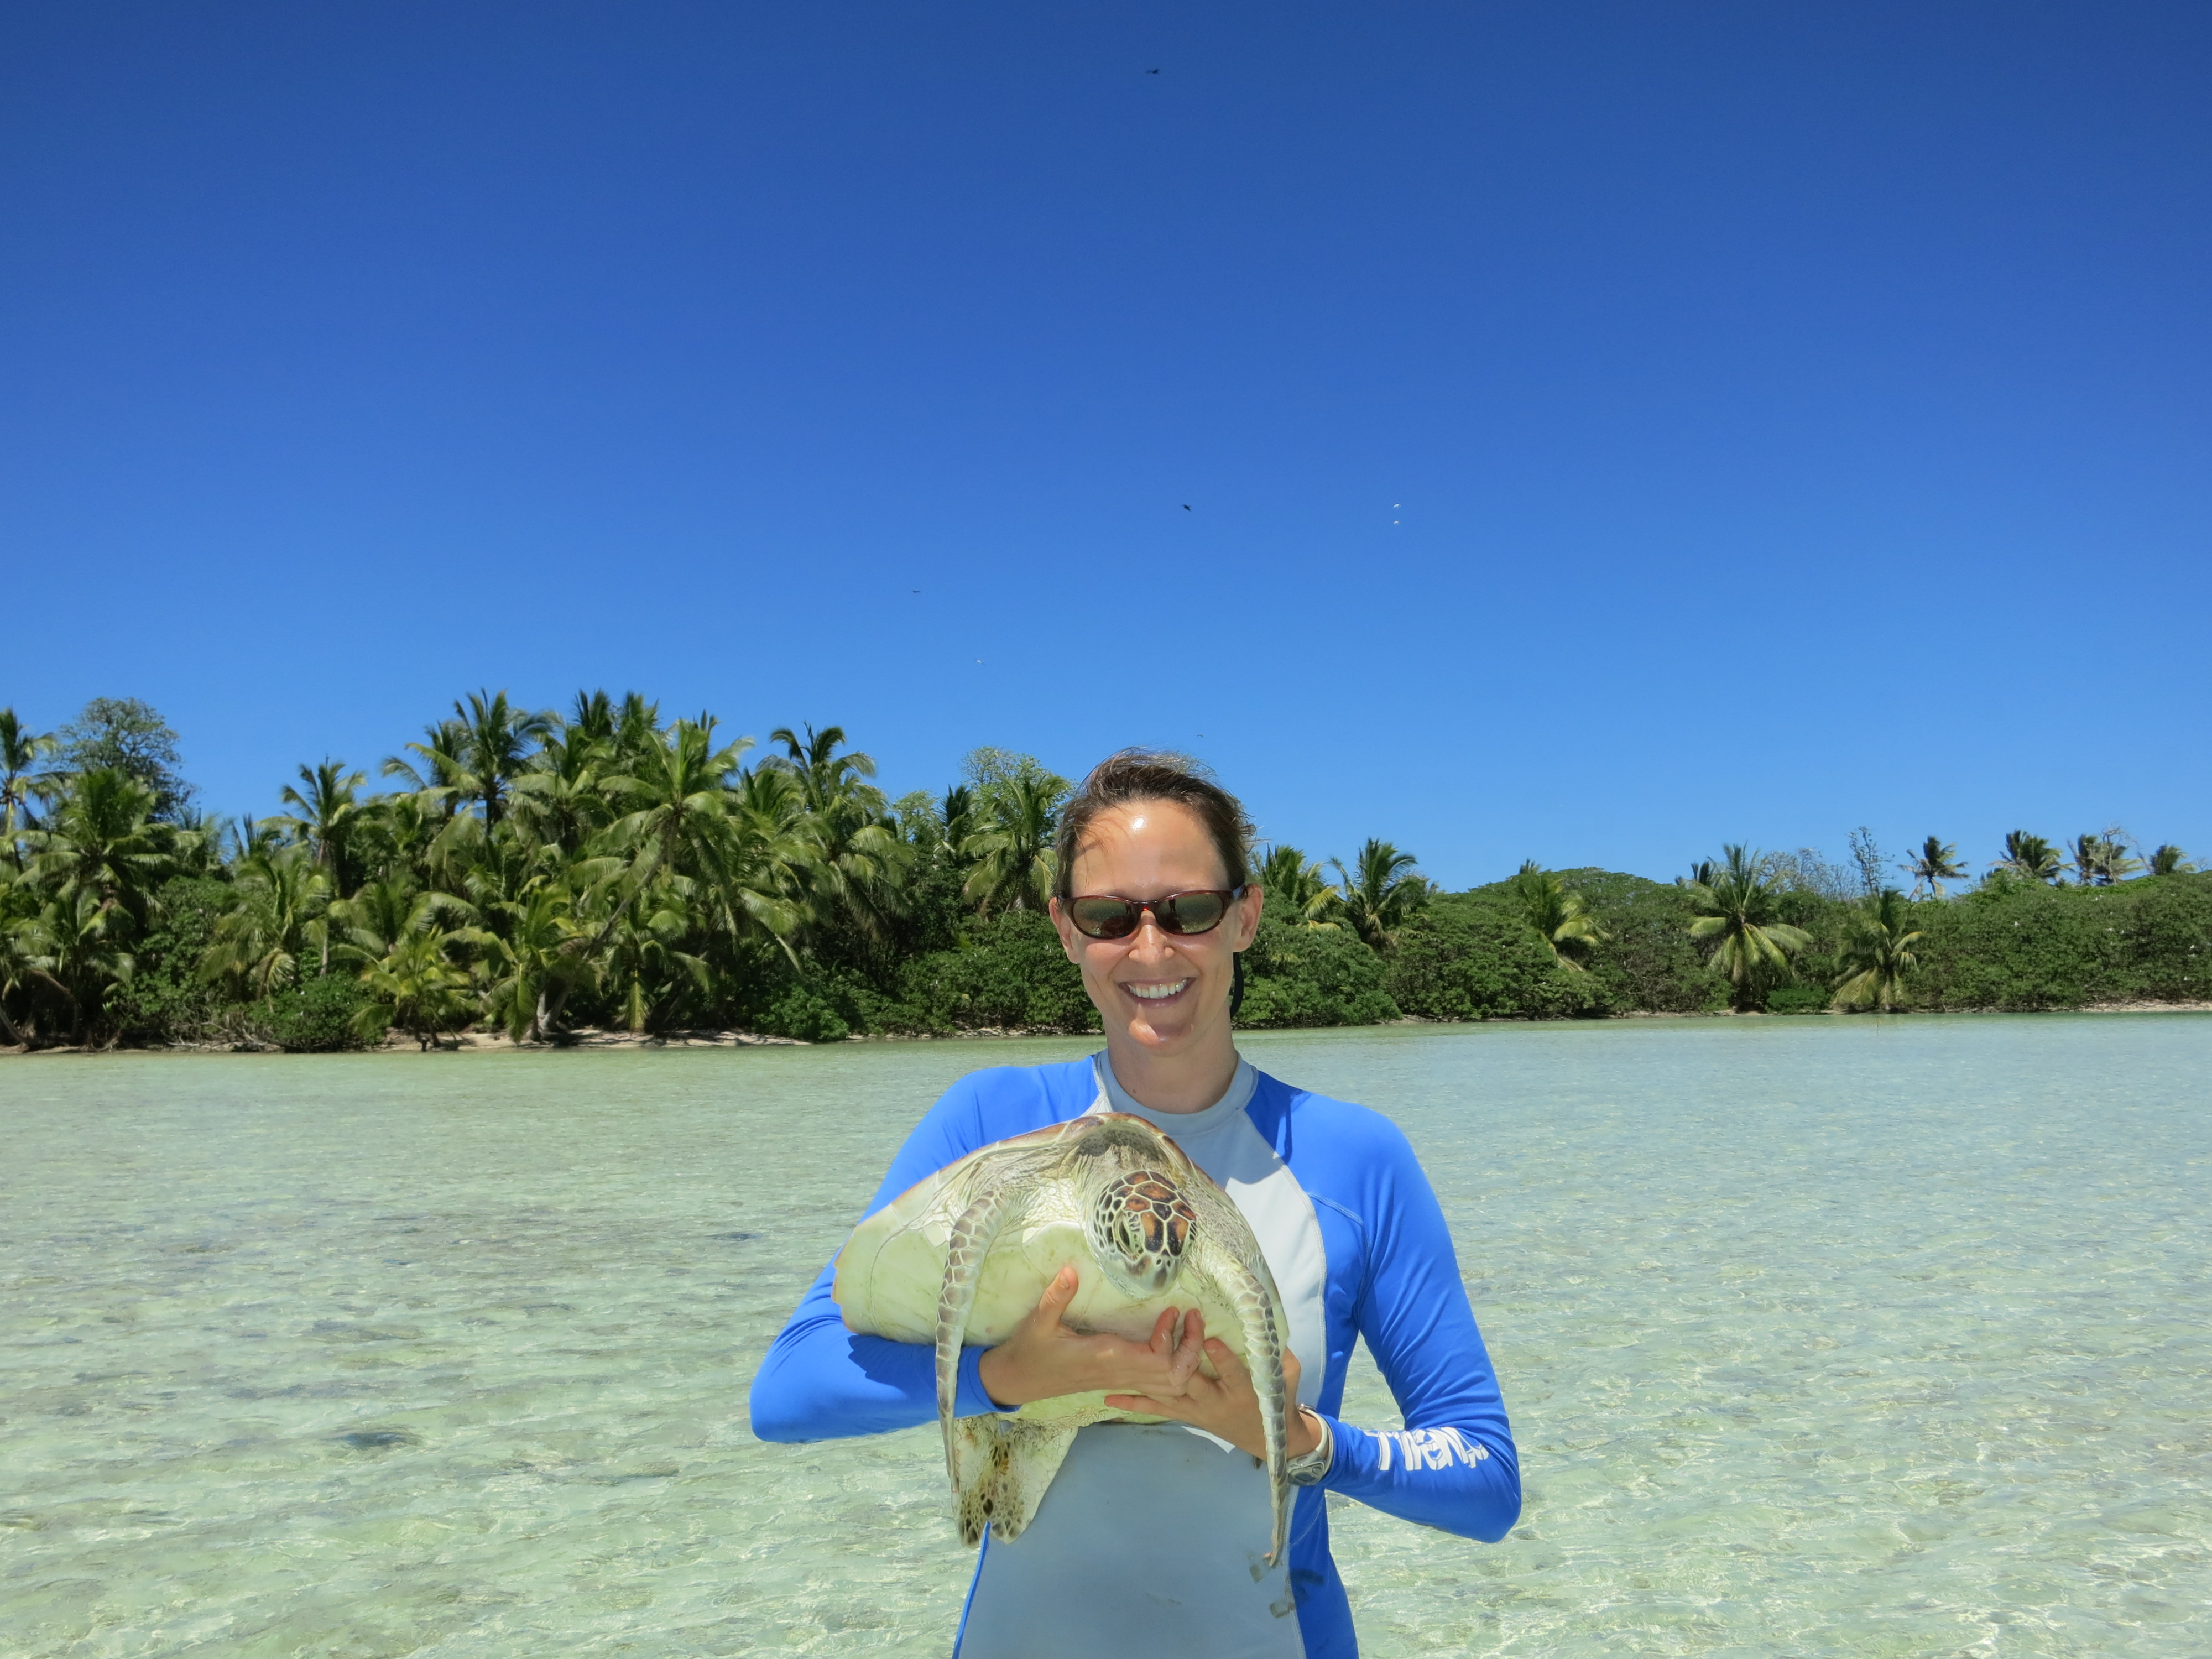 Green sea turtle research at Palmyra Atoll, Central Pacific (2012)